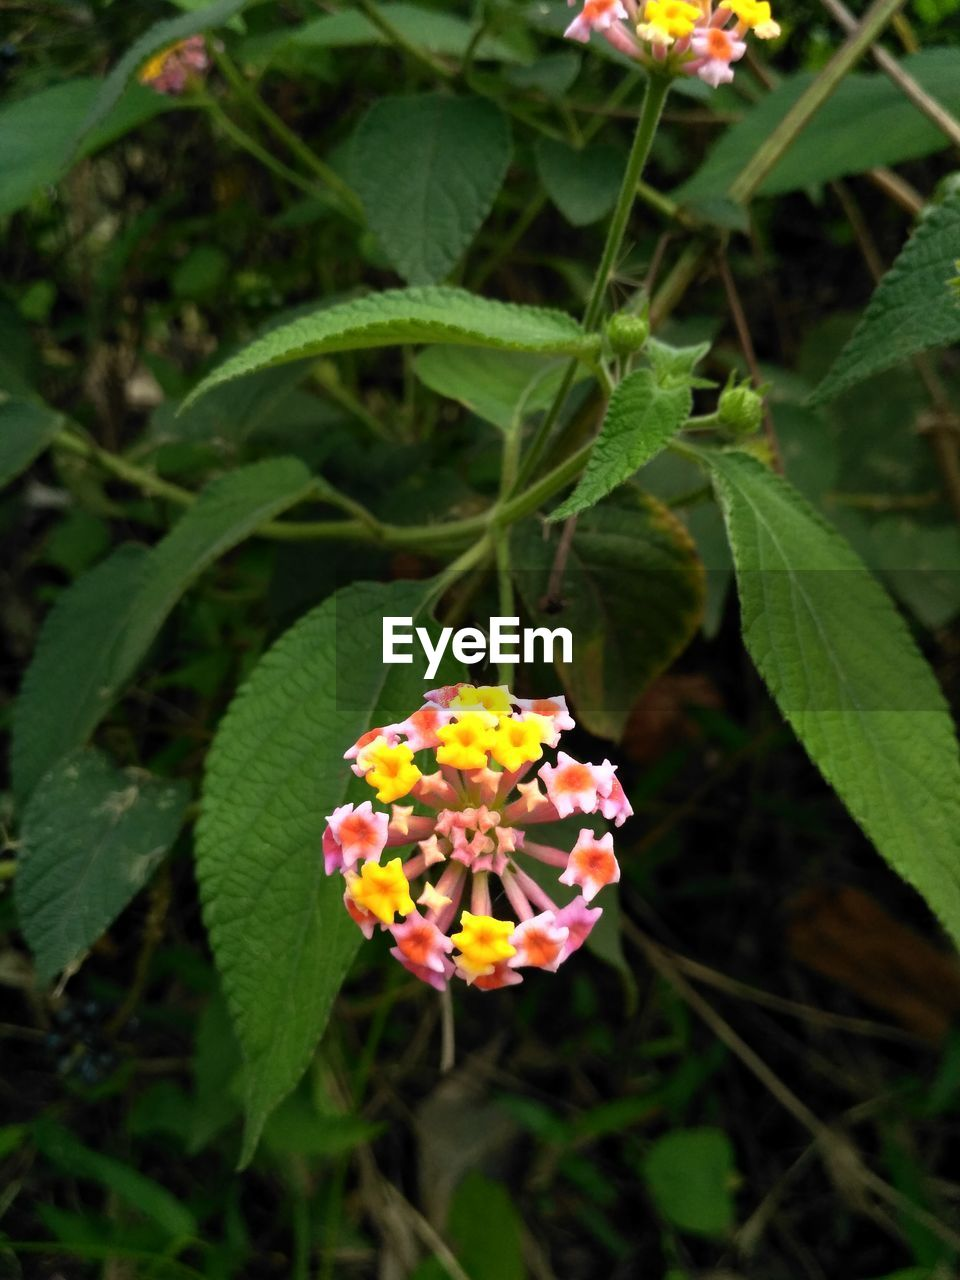 growth, flower, leaf, freshness, plant, beauty in nature, nature, petal, fragility, green color, flower head, day, blooming, focus on foreground, outdoors, park - man made space, no people, close-up, lantana camara, zinnia